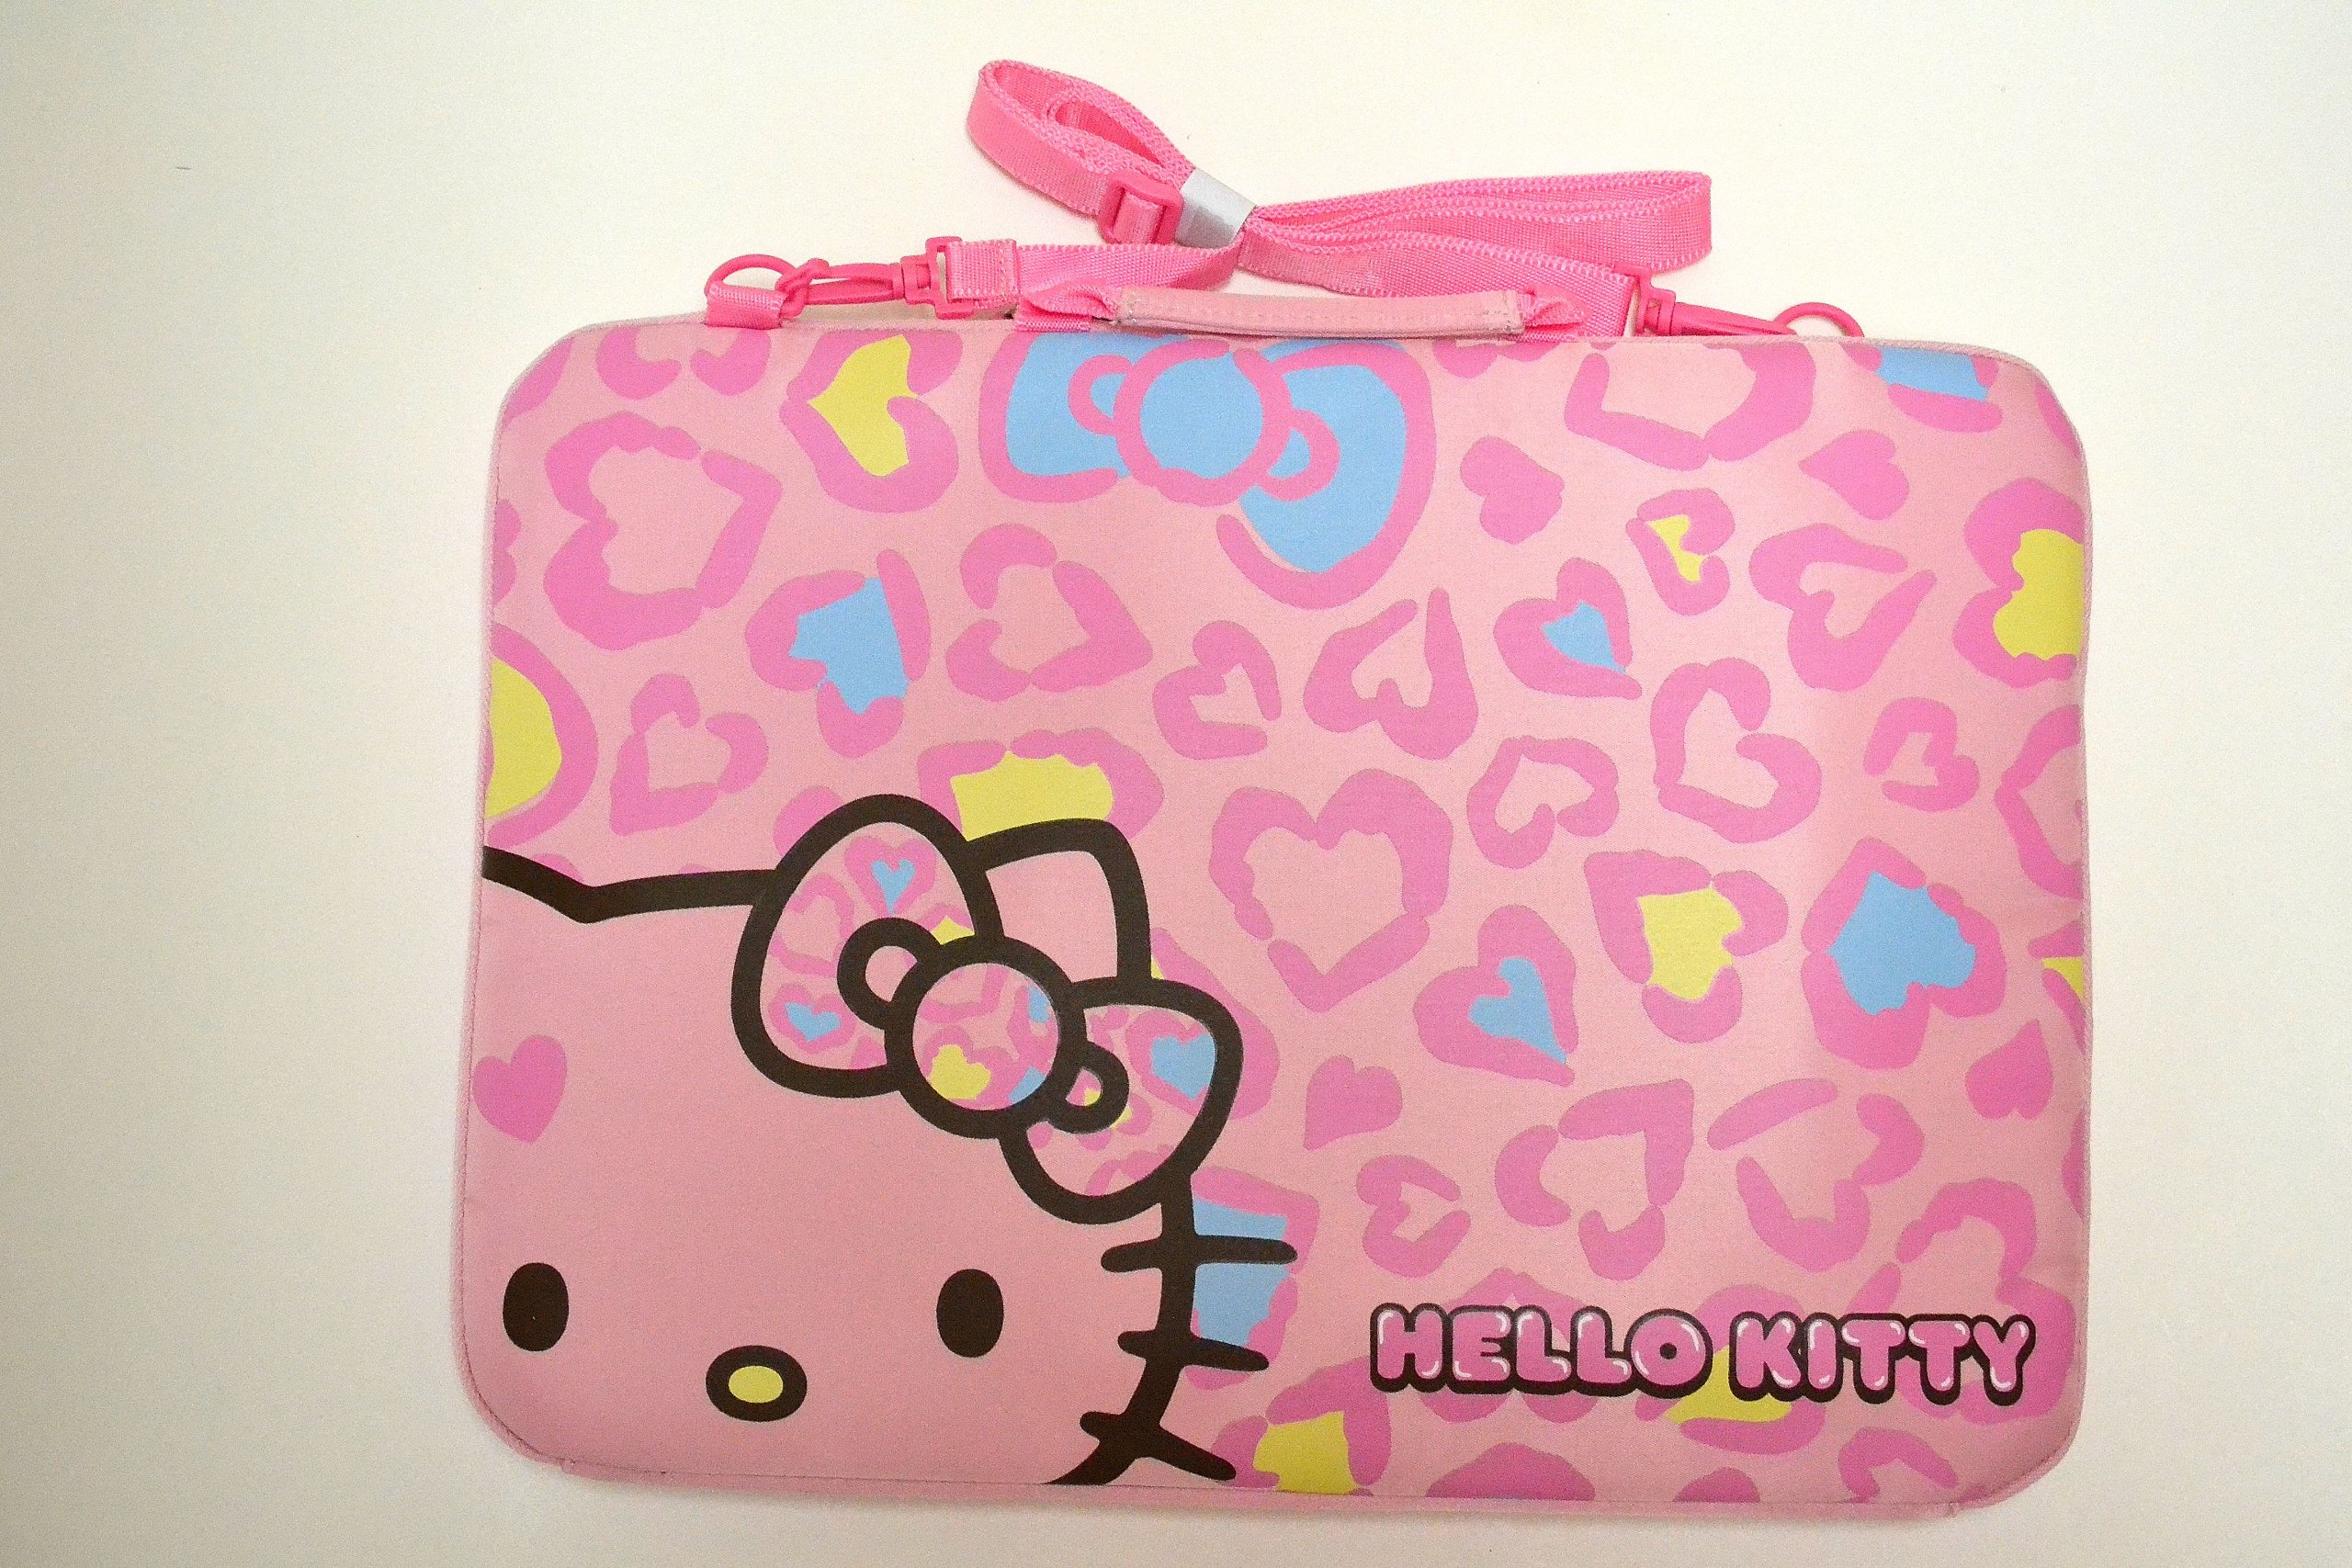 Pink Hello Kitty PC Notebook Laptop Case w/ Handle and Adjustable Strap- 15.5''